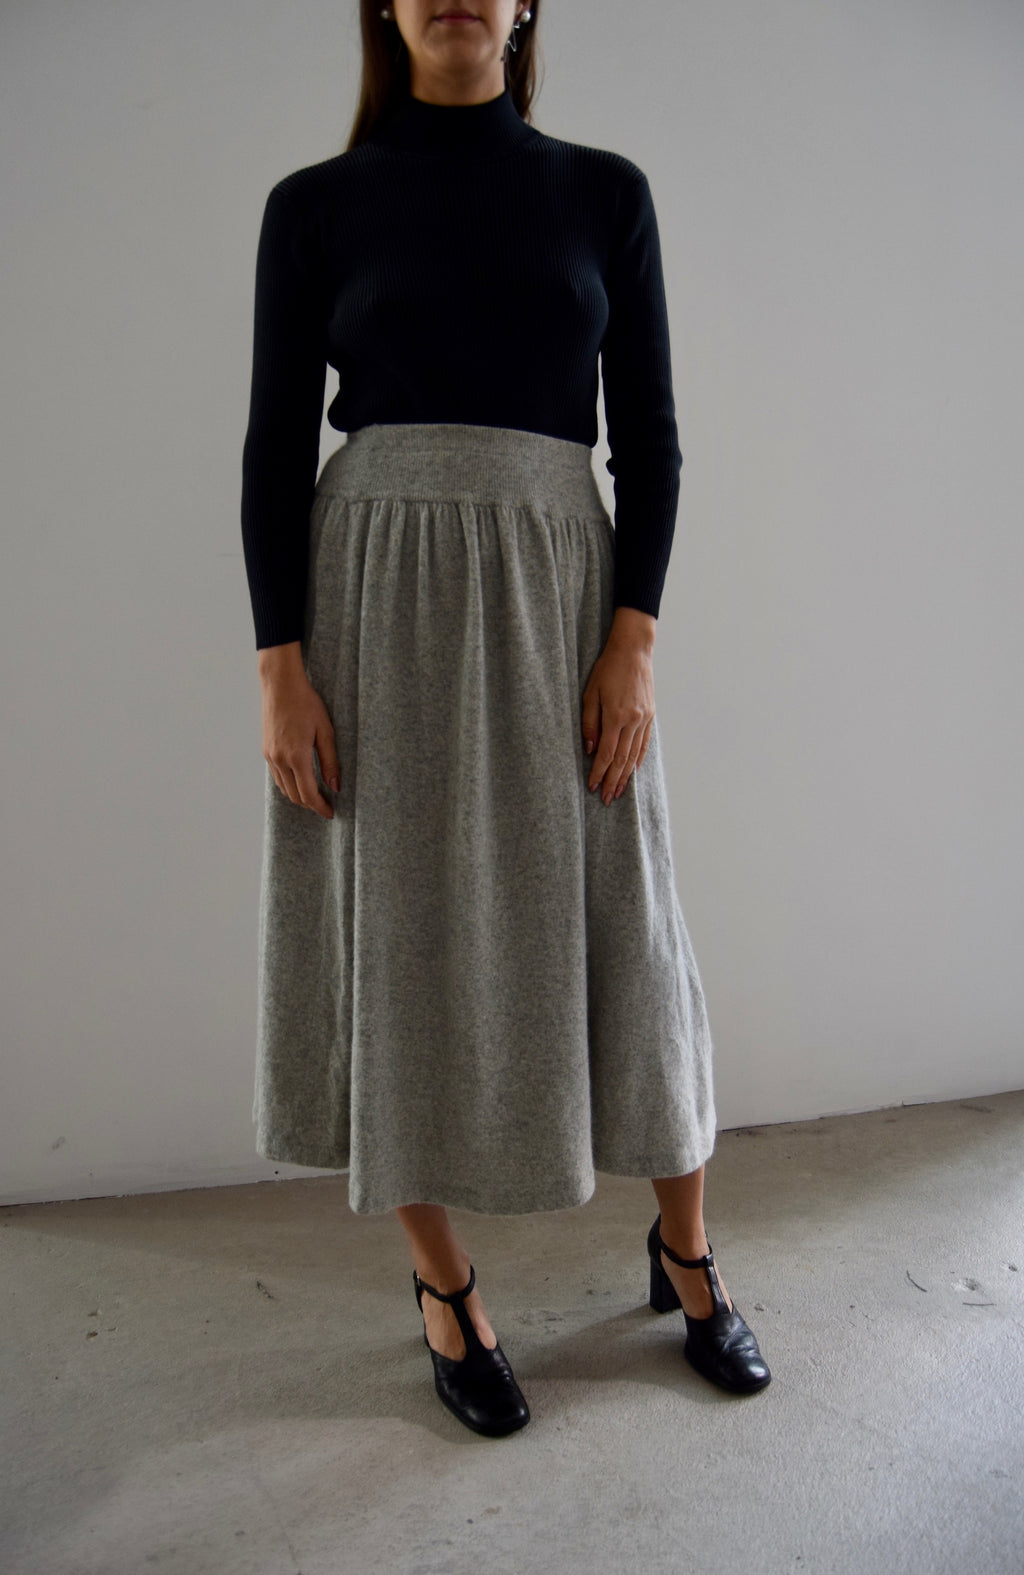 Heather Grey Lambswool Knit Skirt